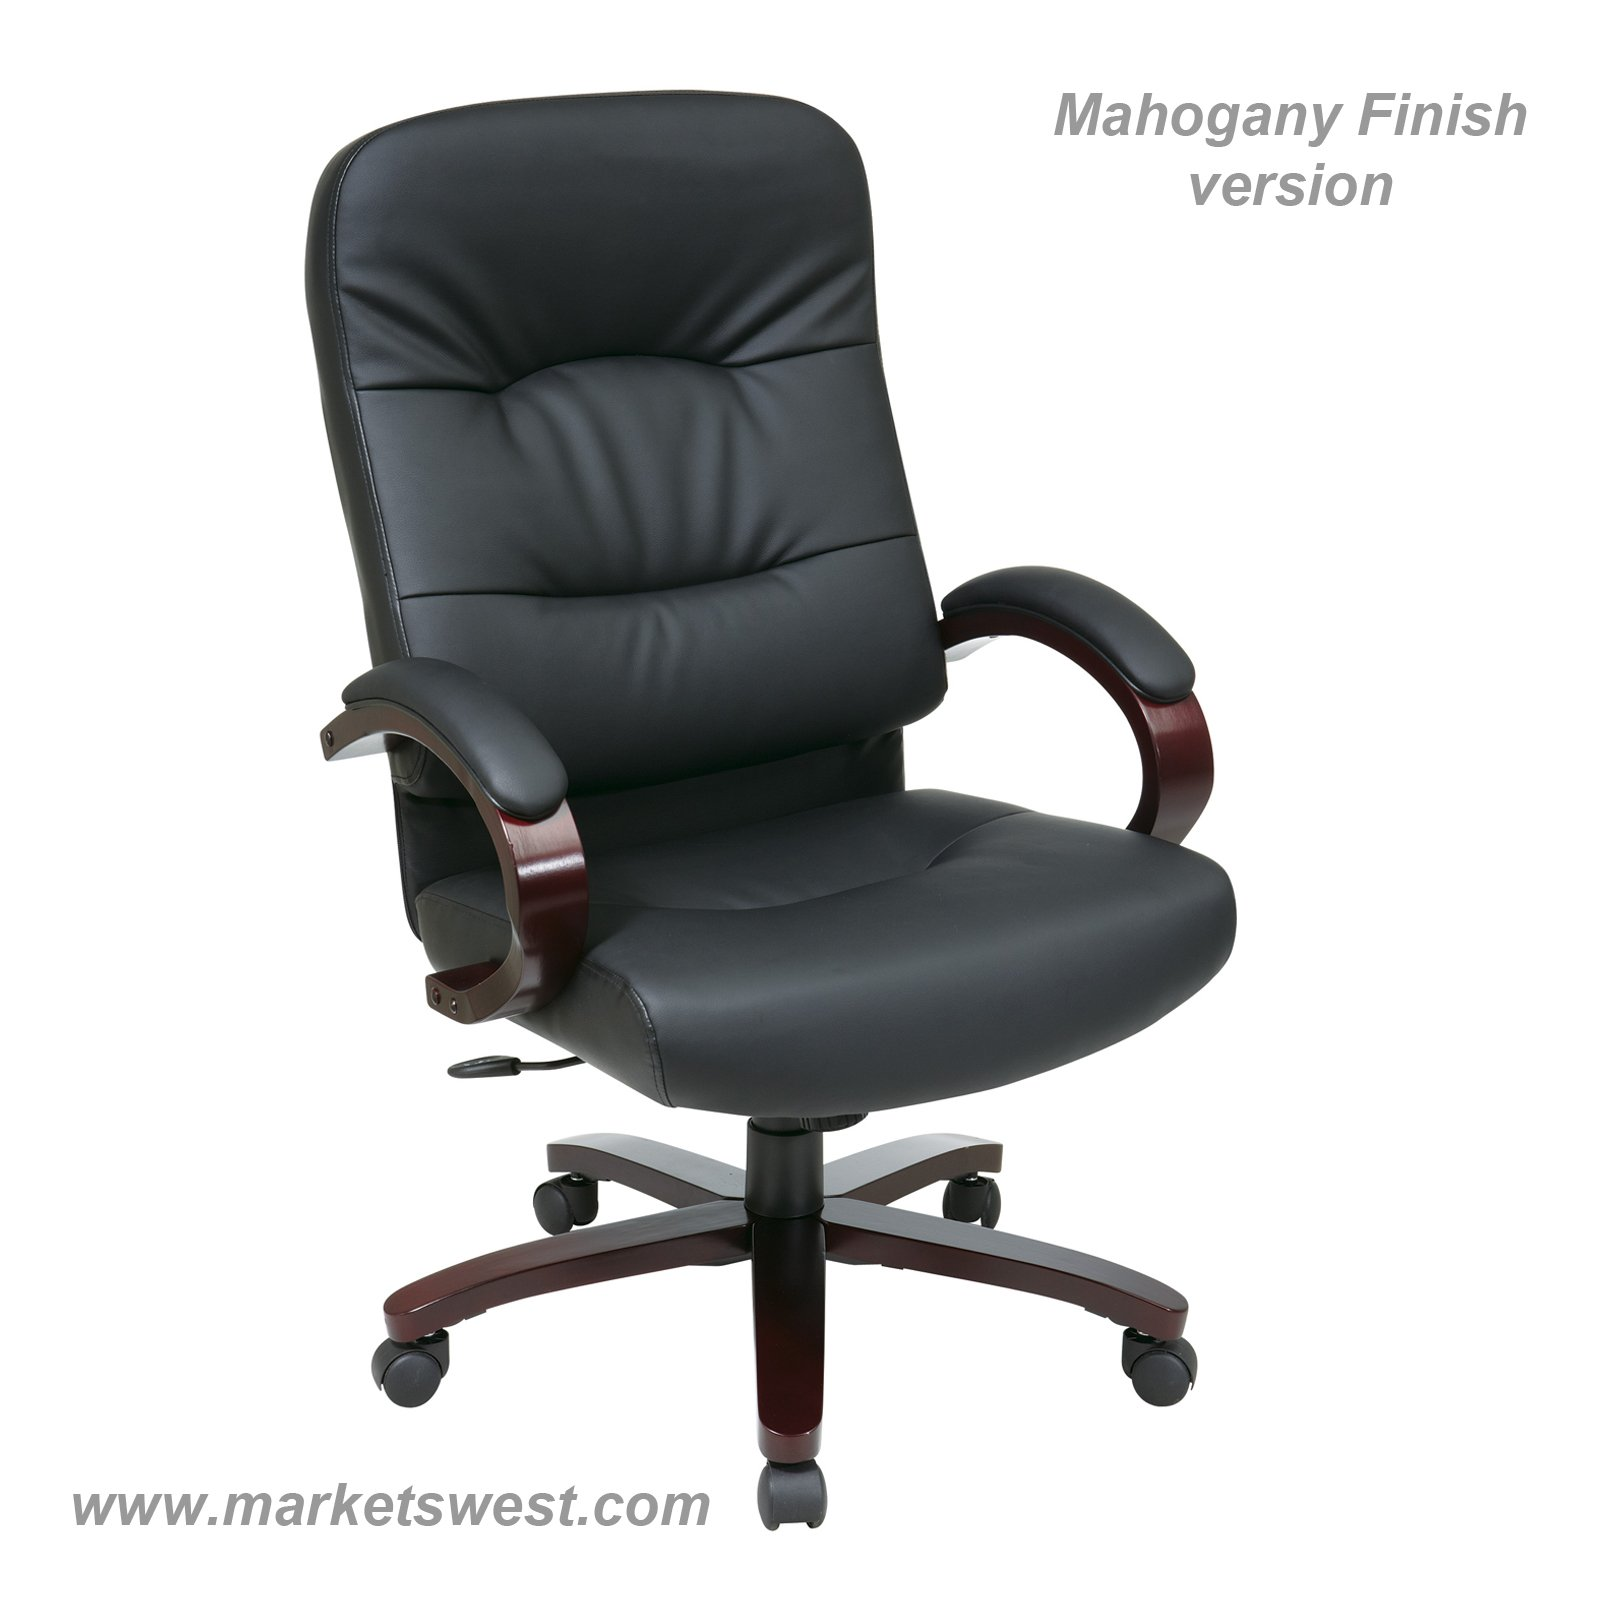 Leather High Back Chair with Mahogany Finish Wood Base and